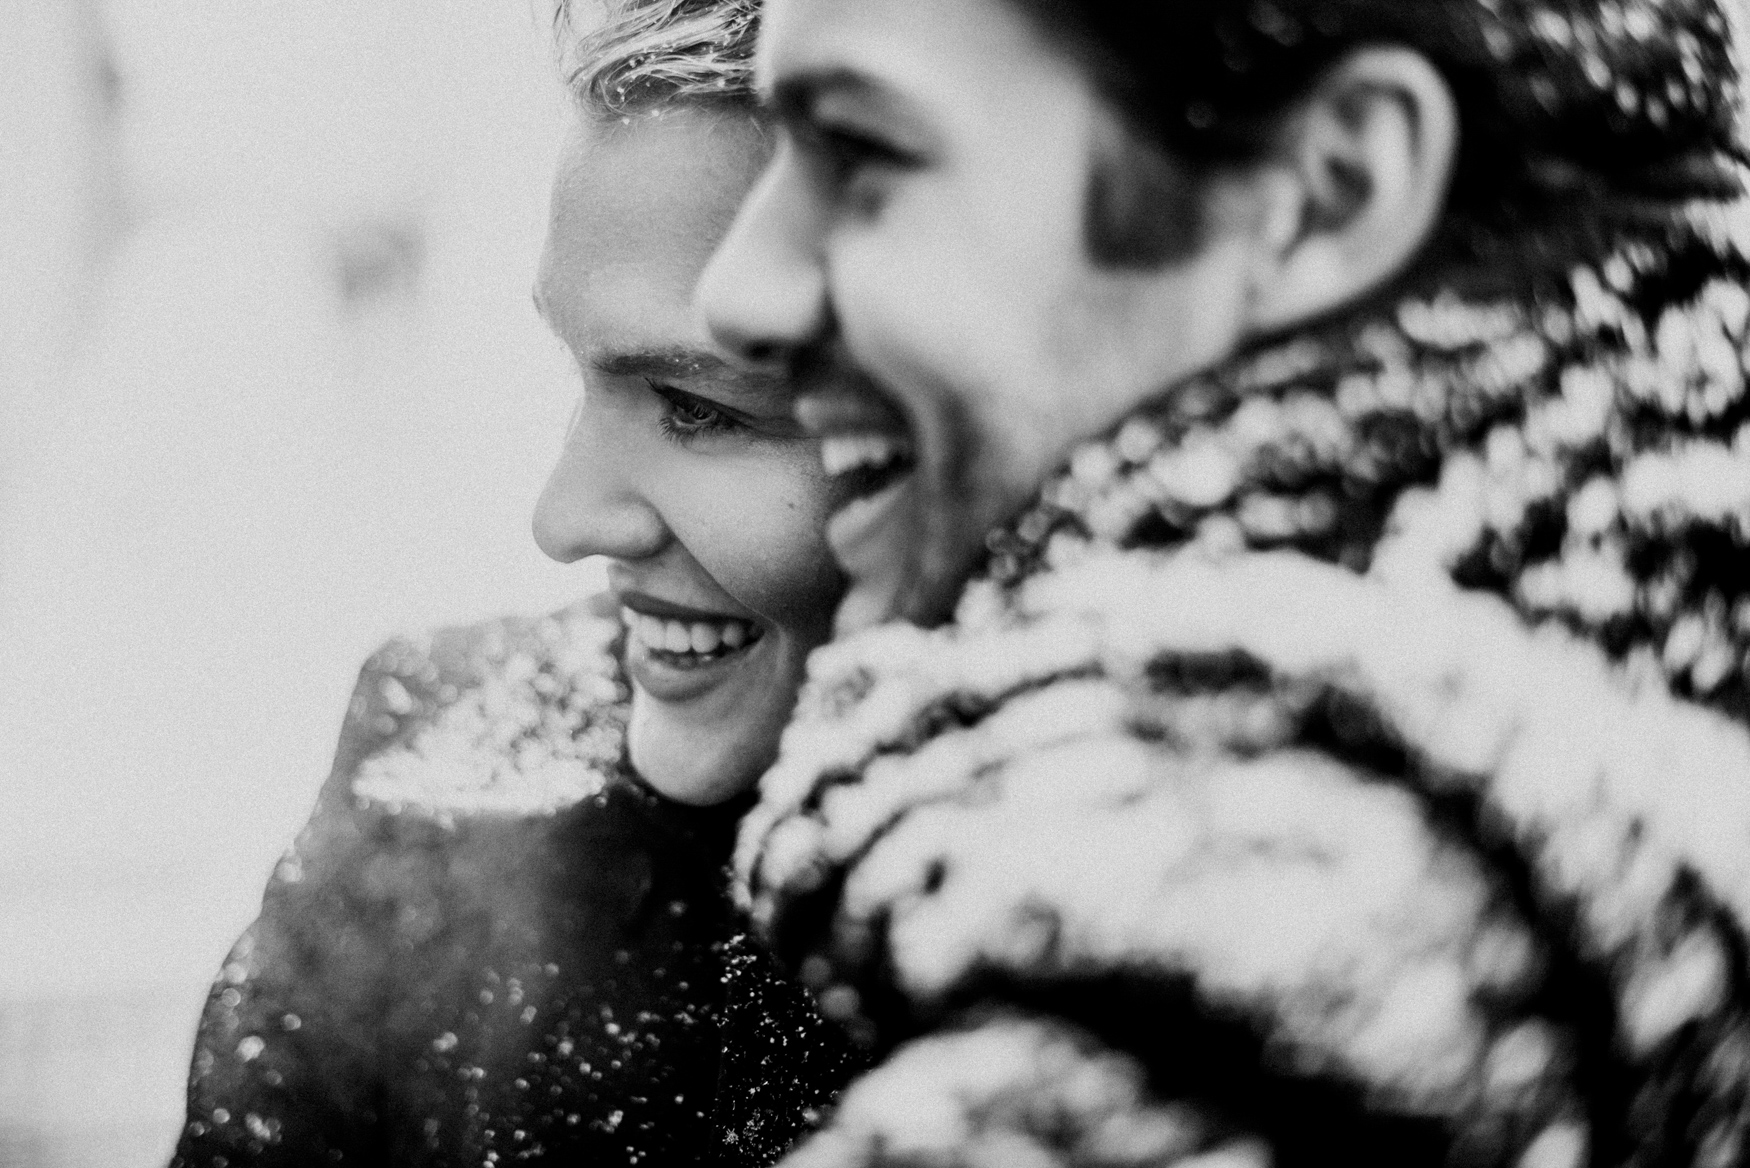 nyc winter snowy manthattan engagement session 020.jpg